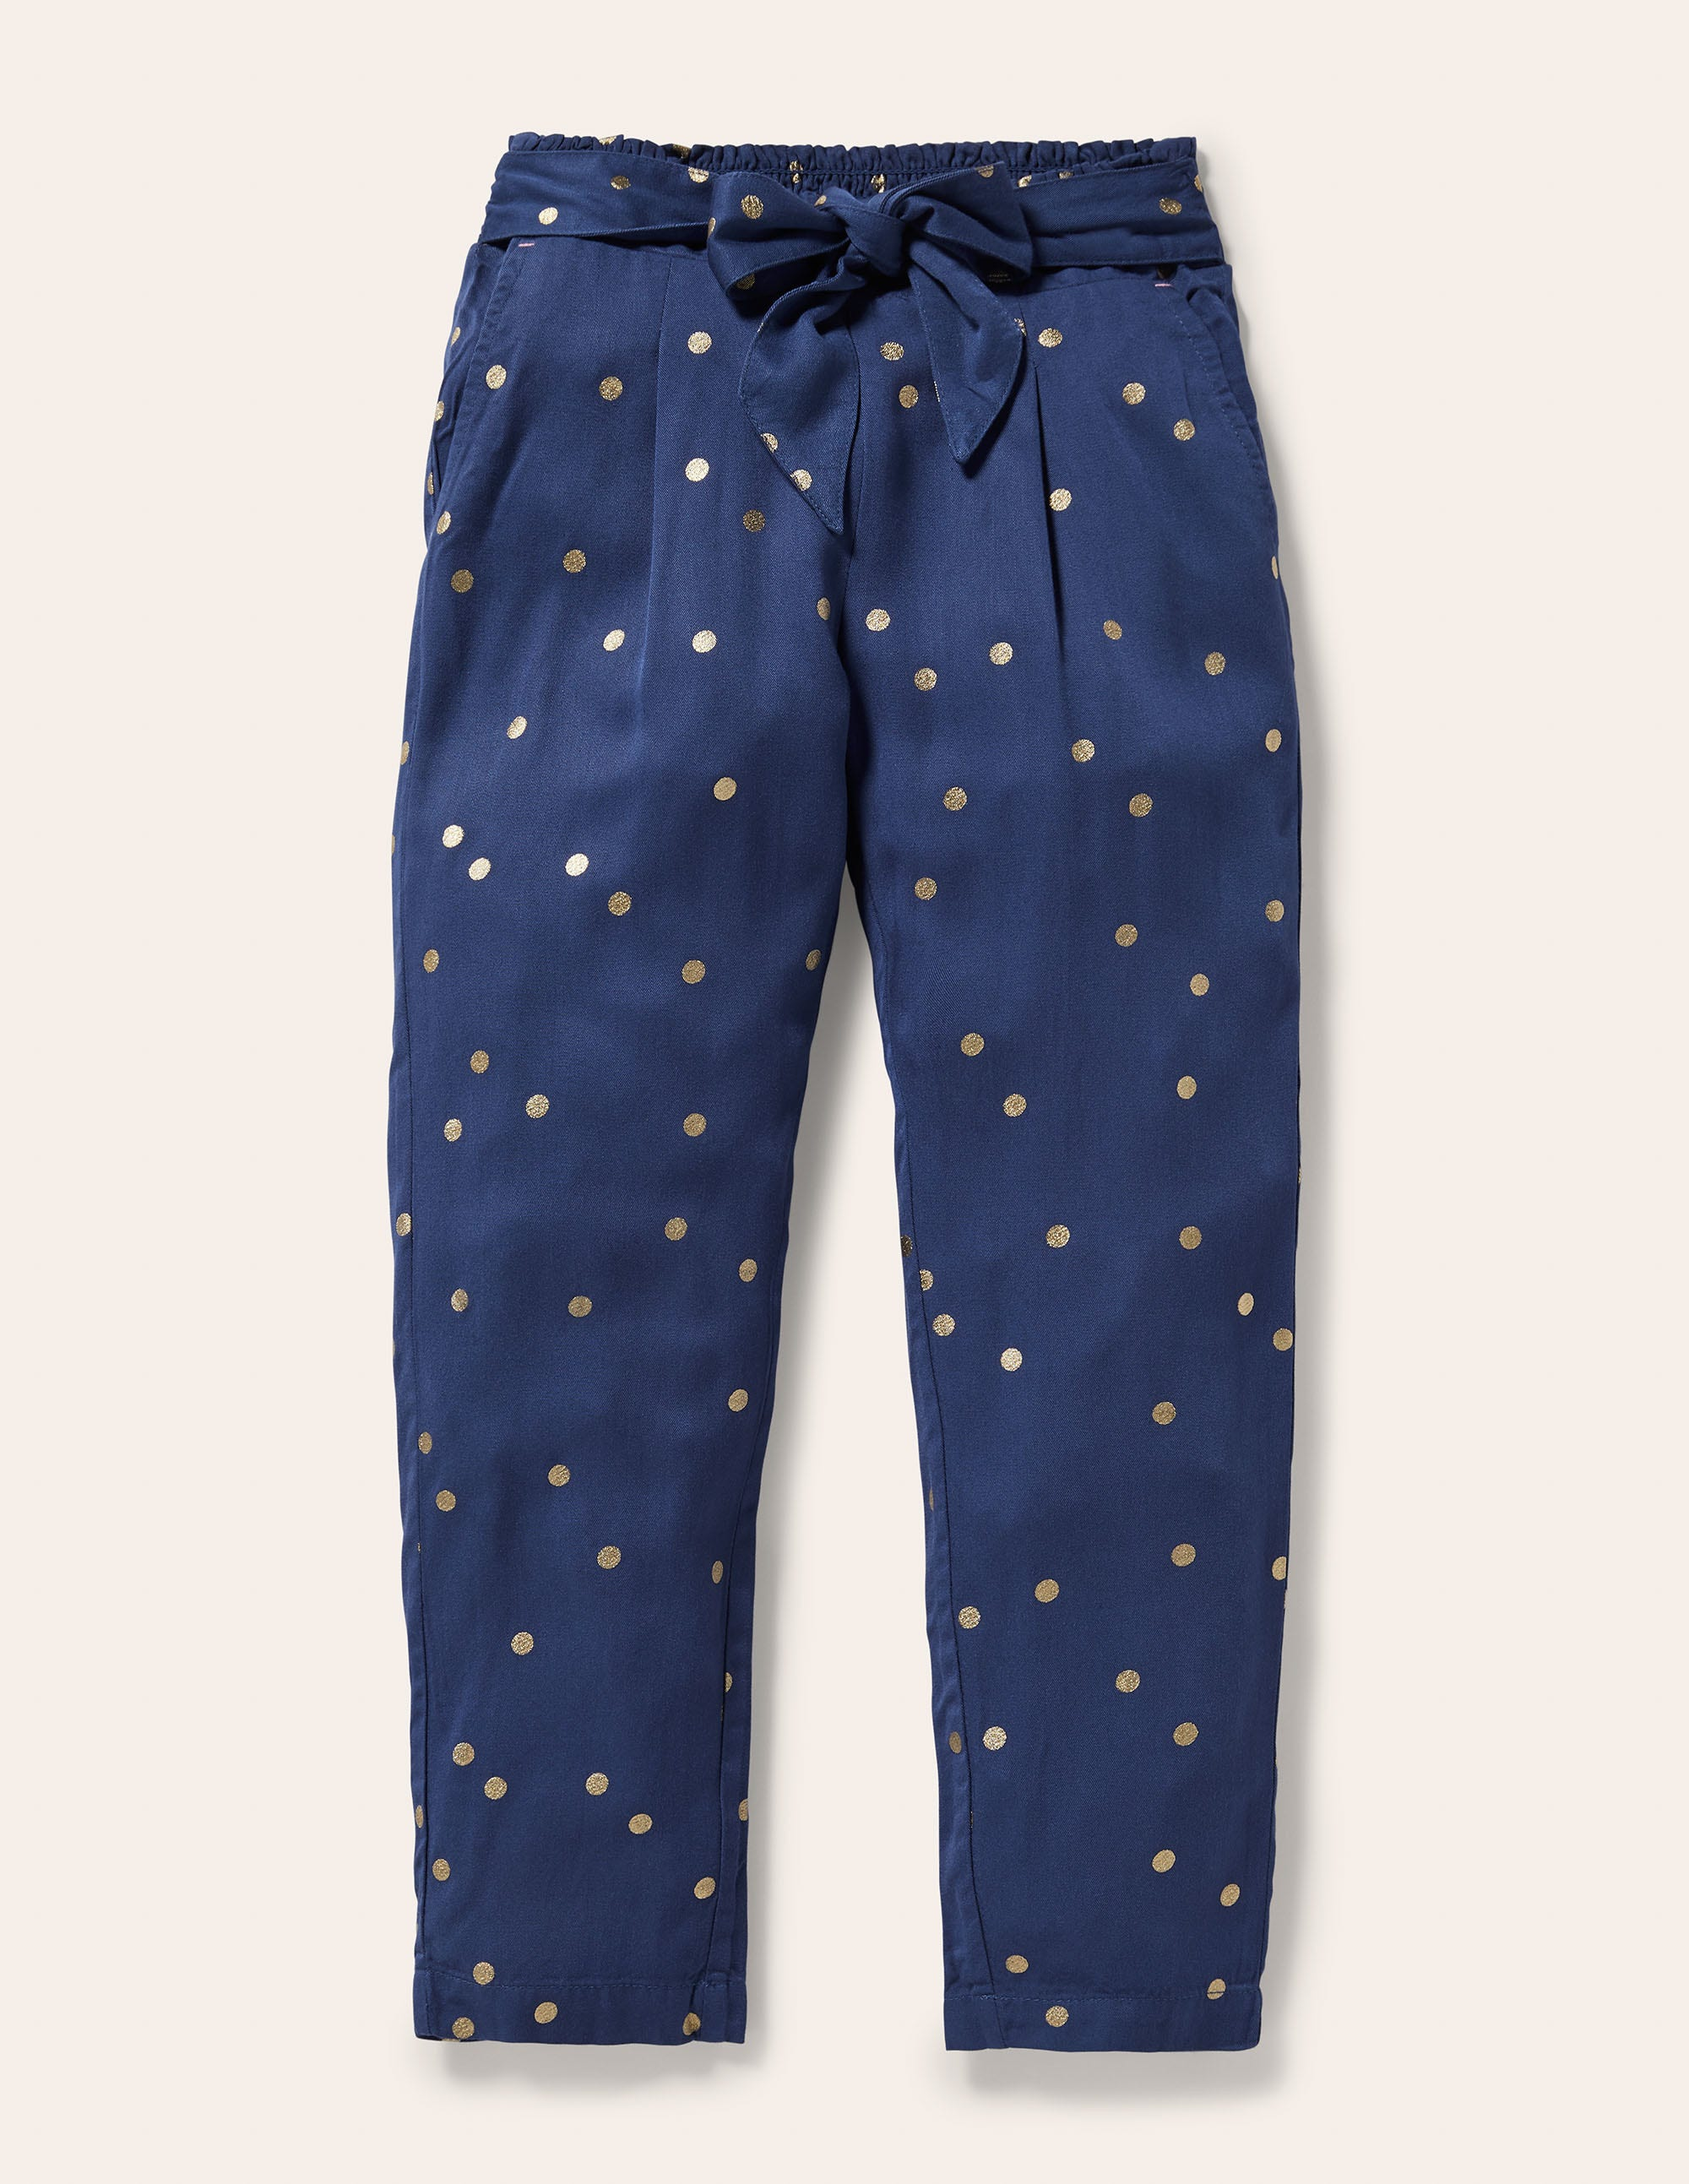 Boden Tie Waist Printed Pants - Starbaord Blue and Gold Spot